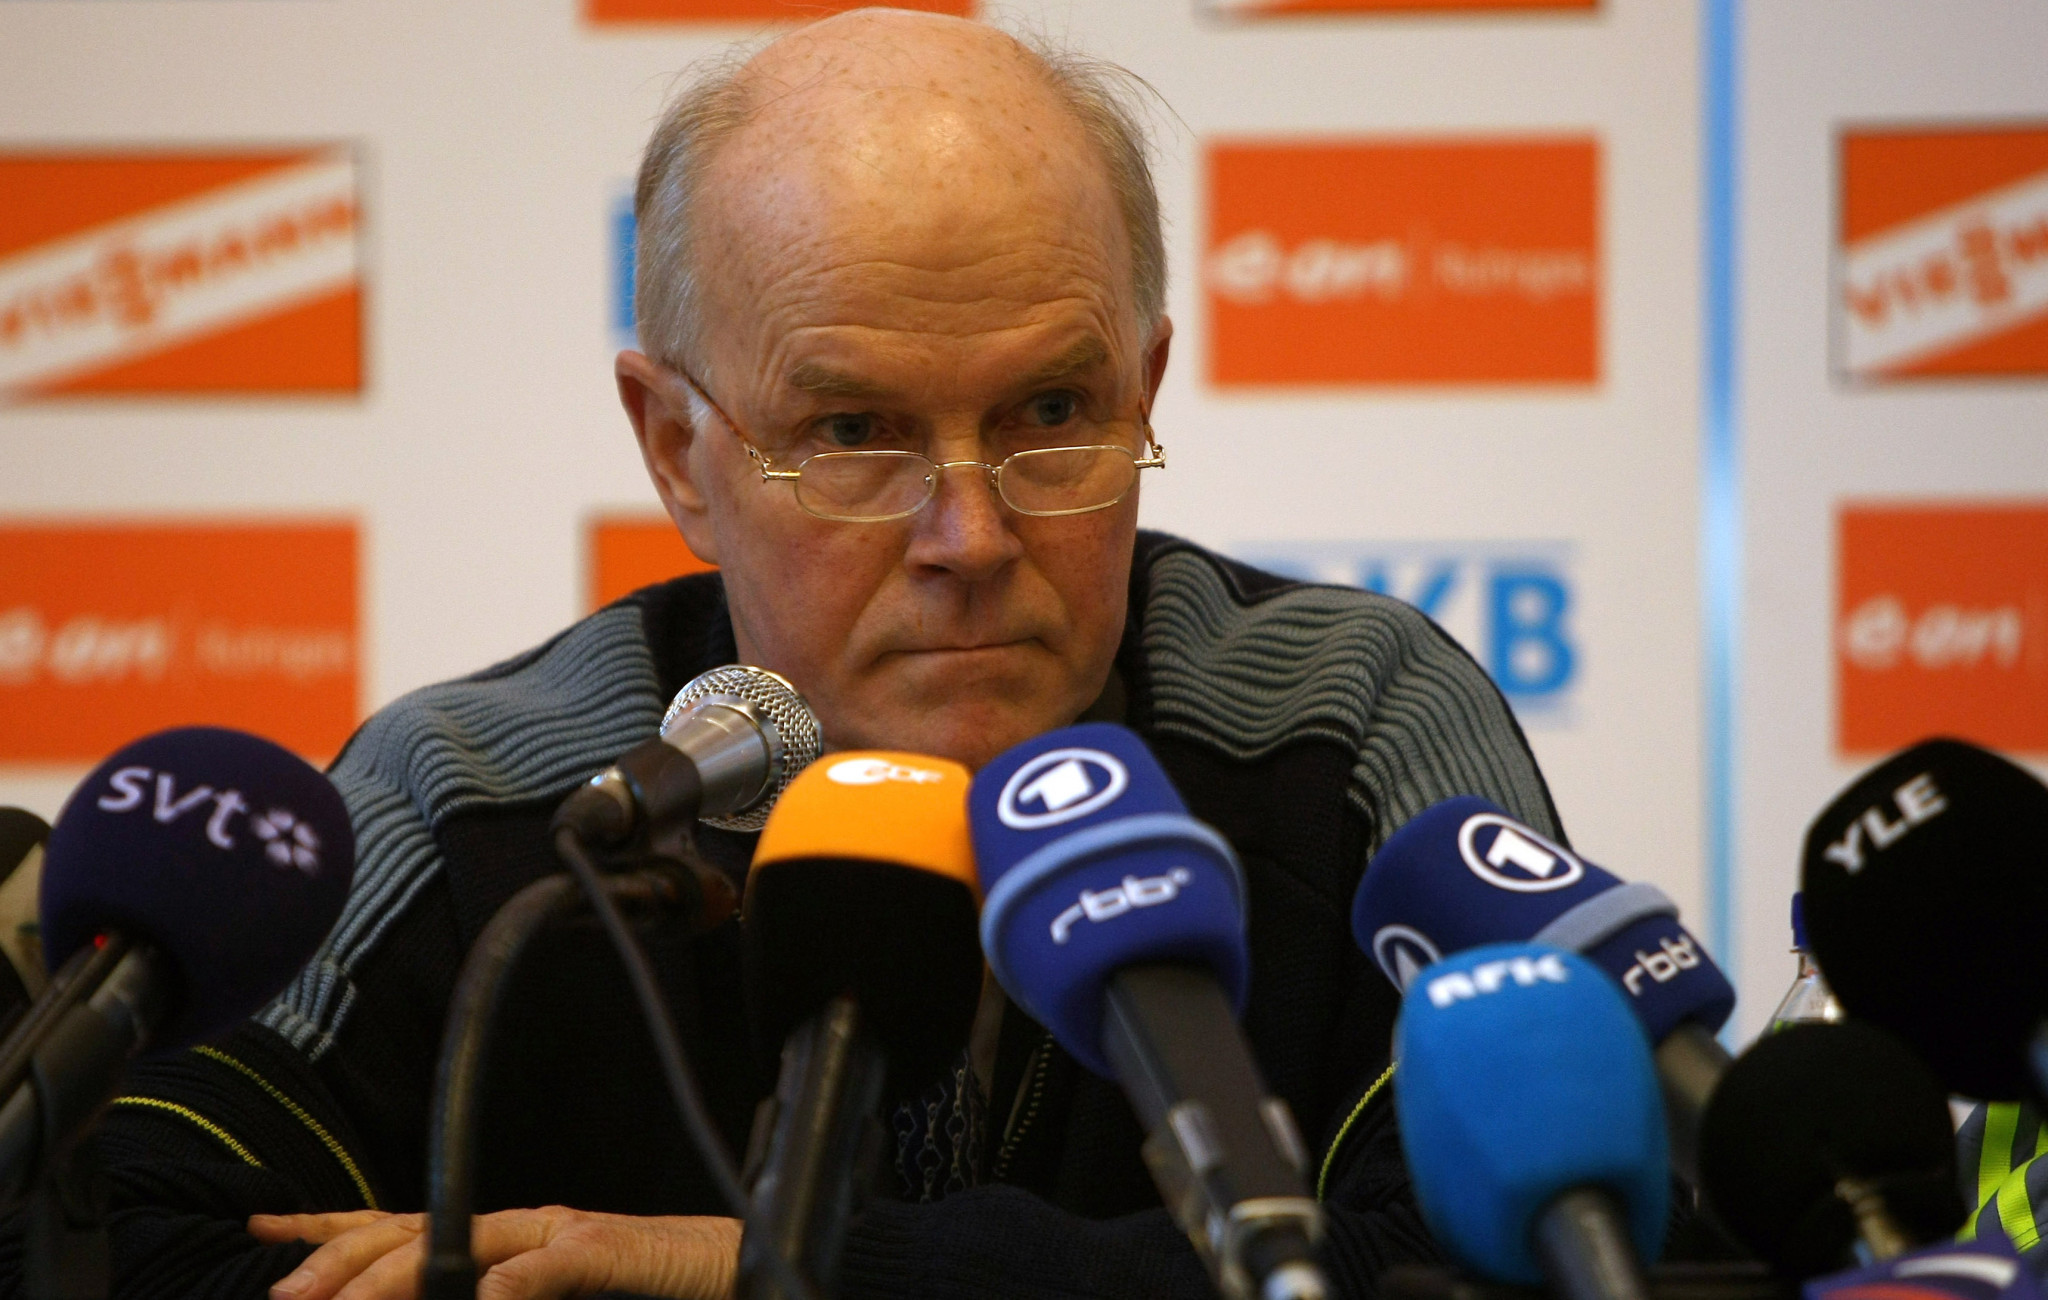 Besseberg claims WADA targetted IBU because they are panicking over failure to prove Russian doping